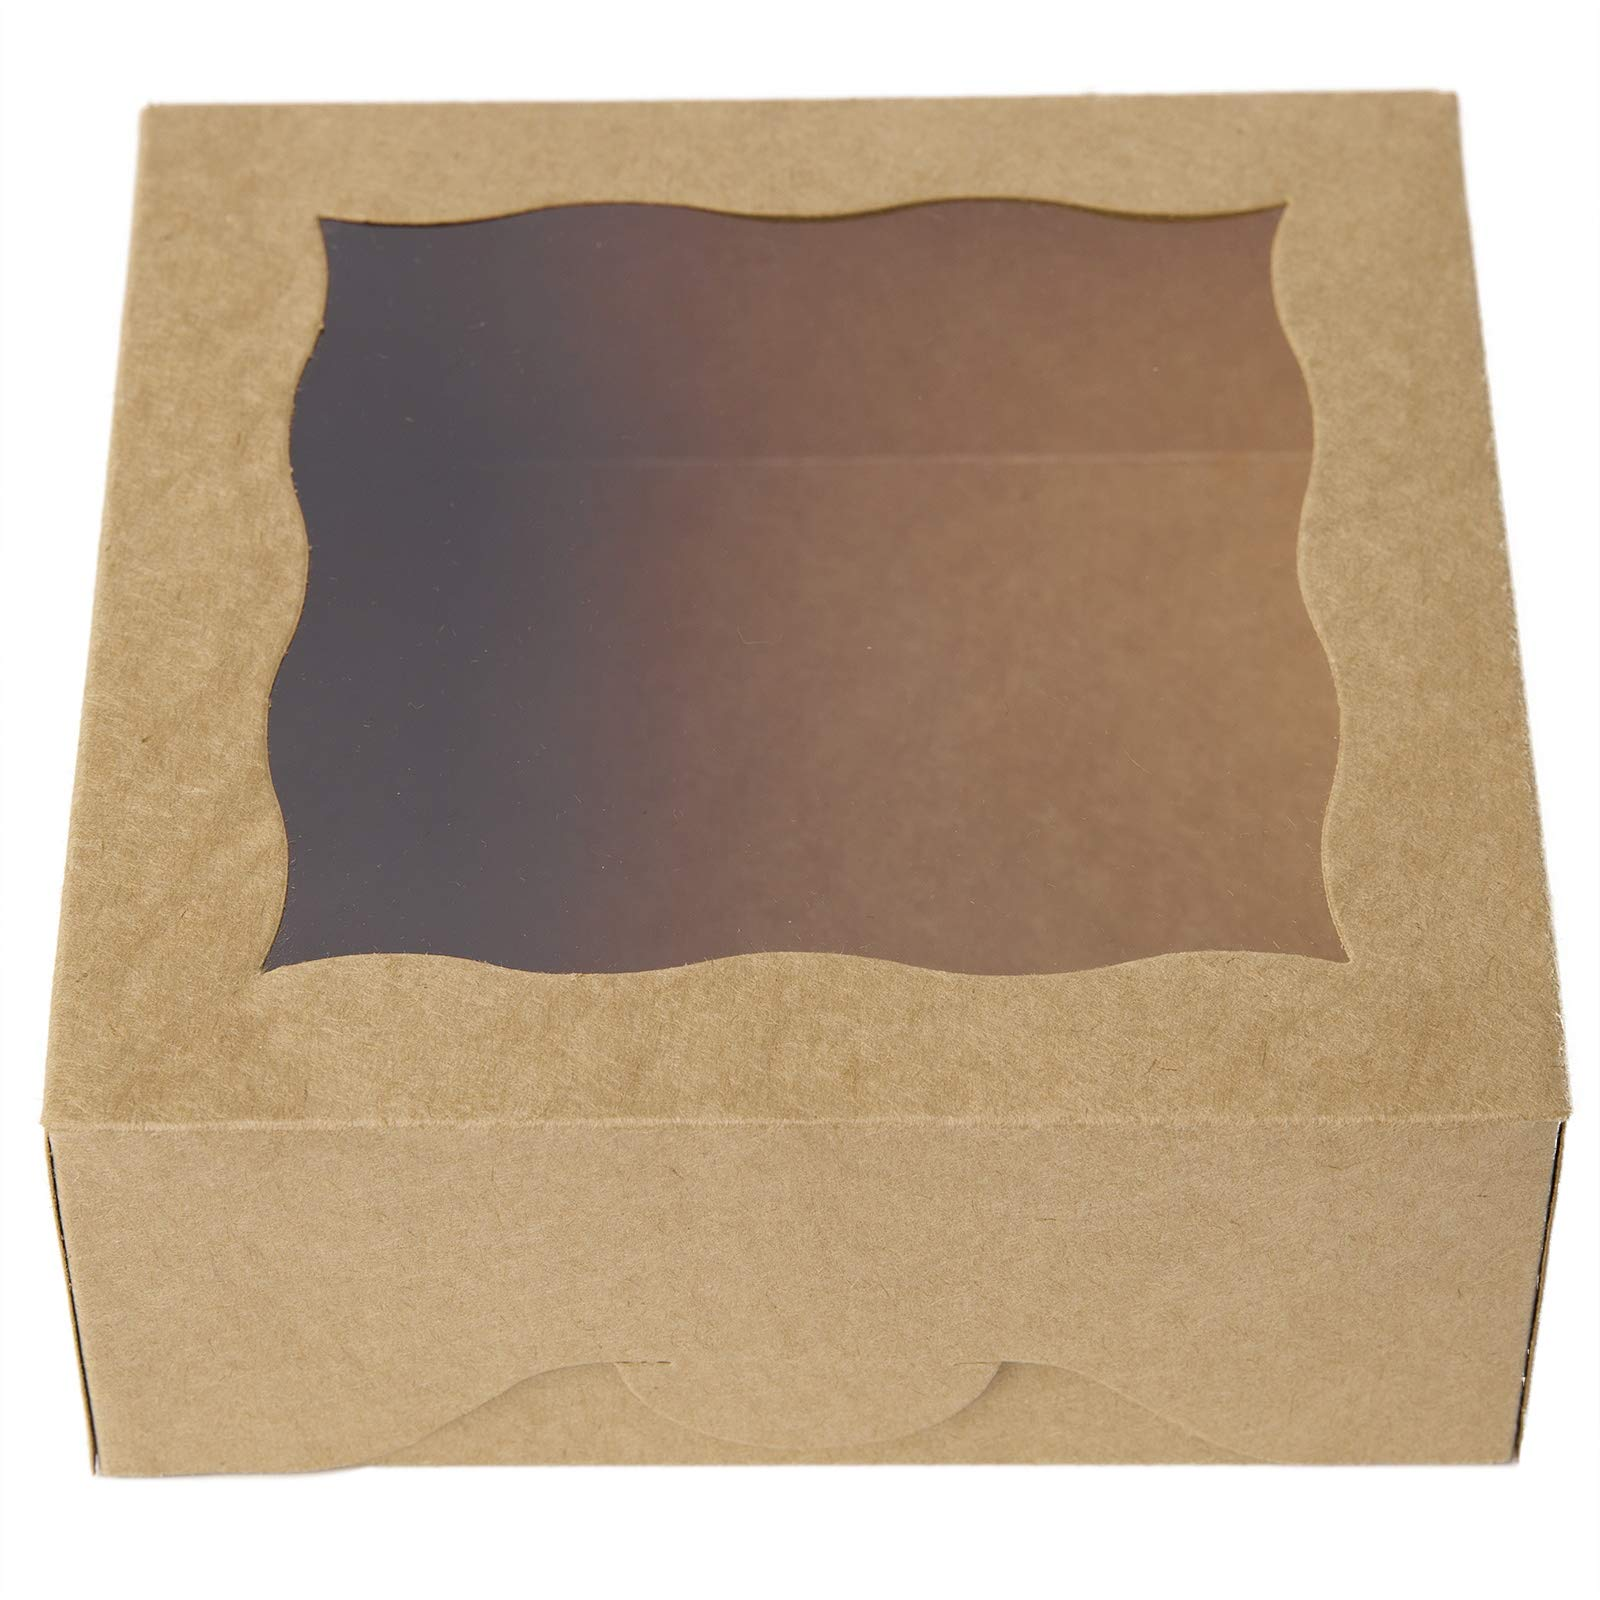 "ONE MORE 6""Brown Bakery Boxes with PVC Window for Pie and Cookies Boxes Small Natural Craft Paper Box 6x6x2.5inch,12 of Pack"